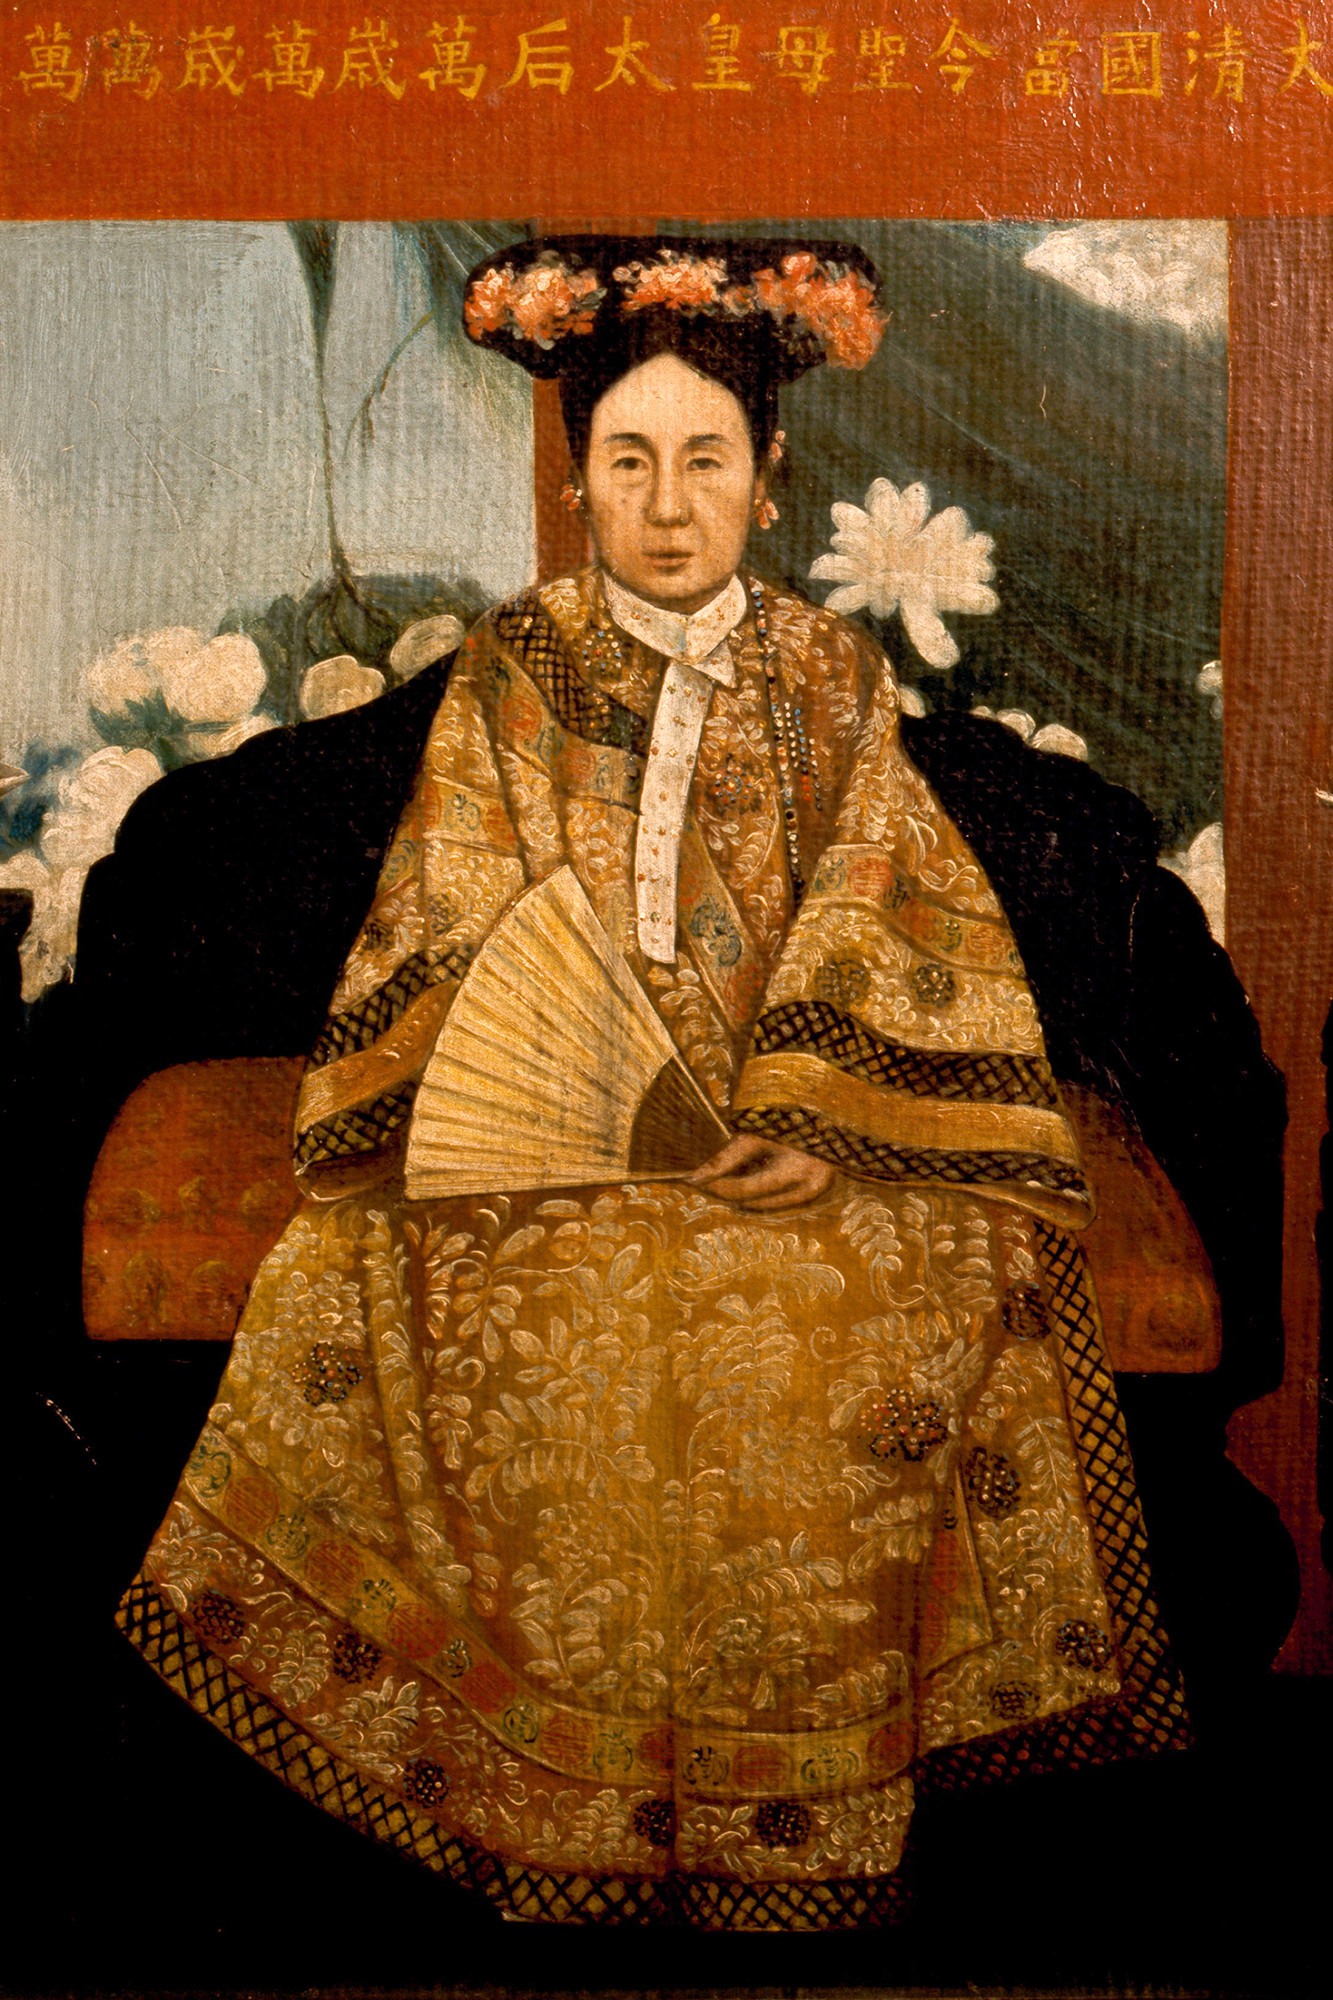 Portrait of the Empress Dowager Tzu hsi, painted by a naive Chinese artist from a photograph taken in 1903